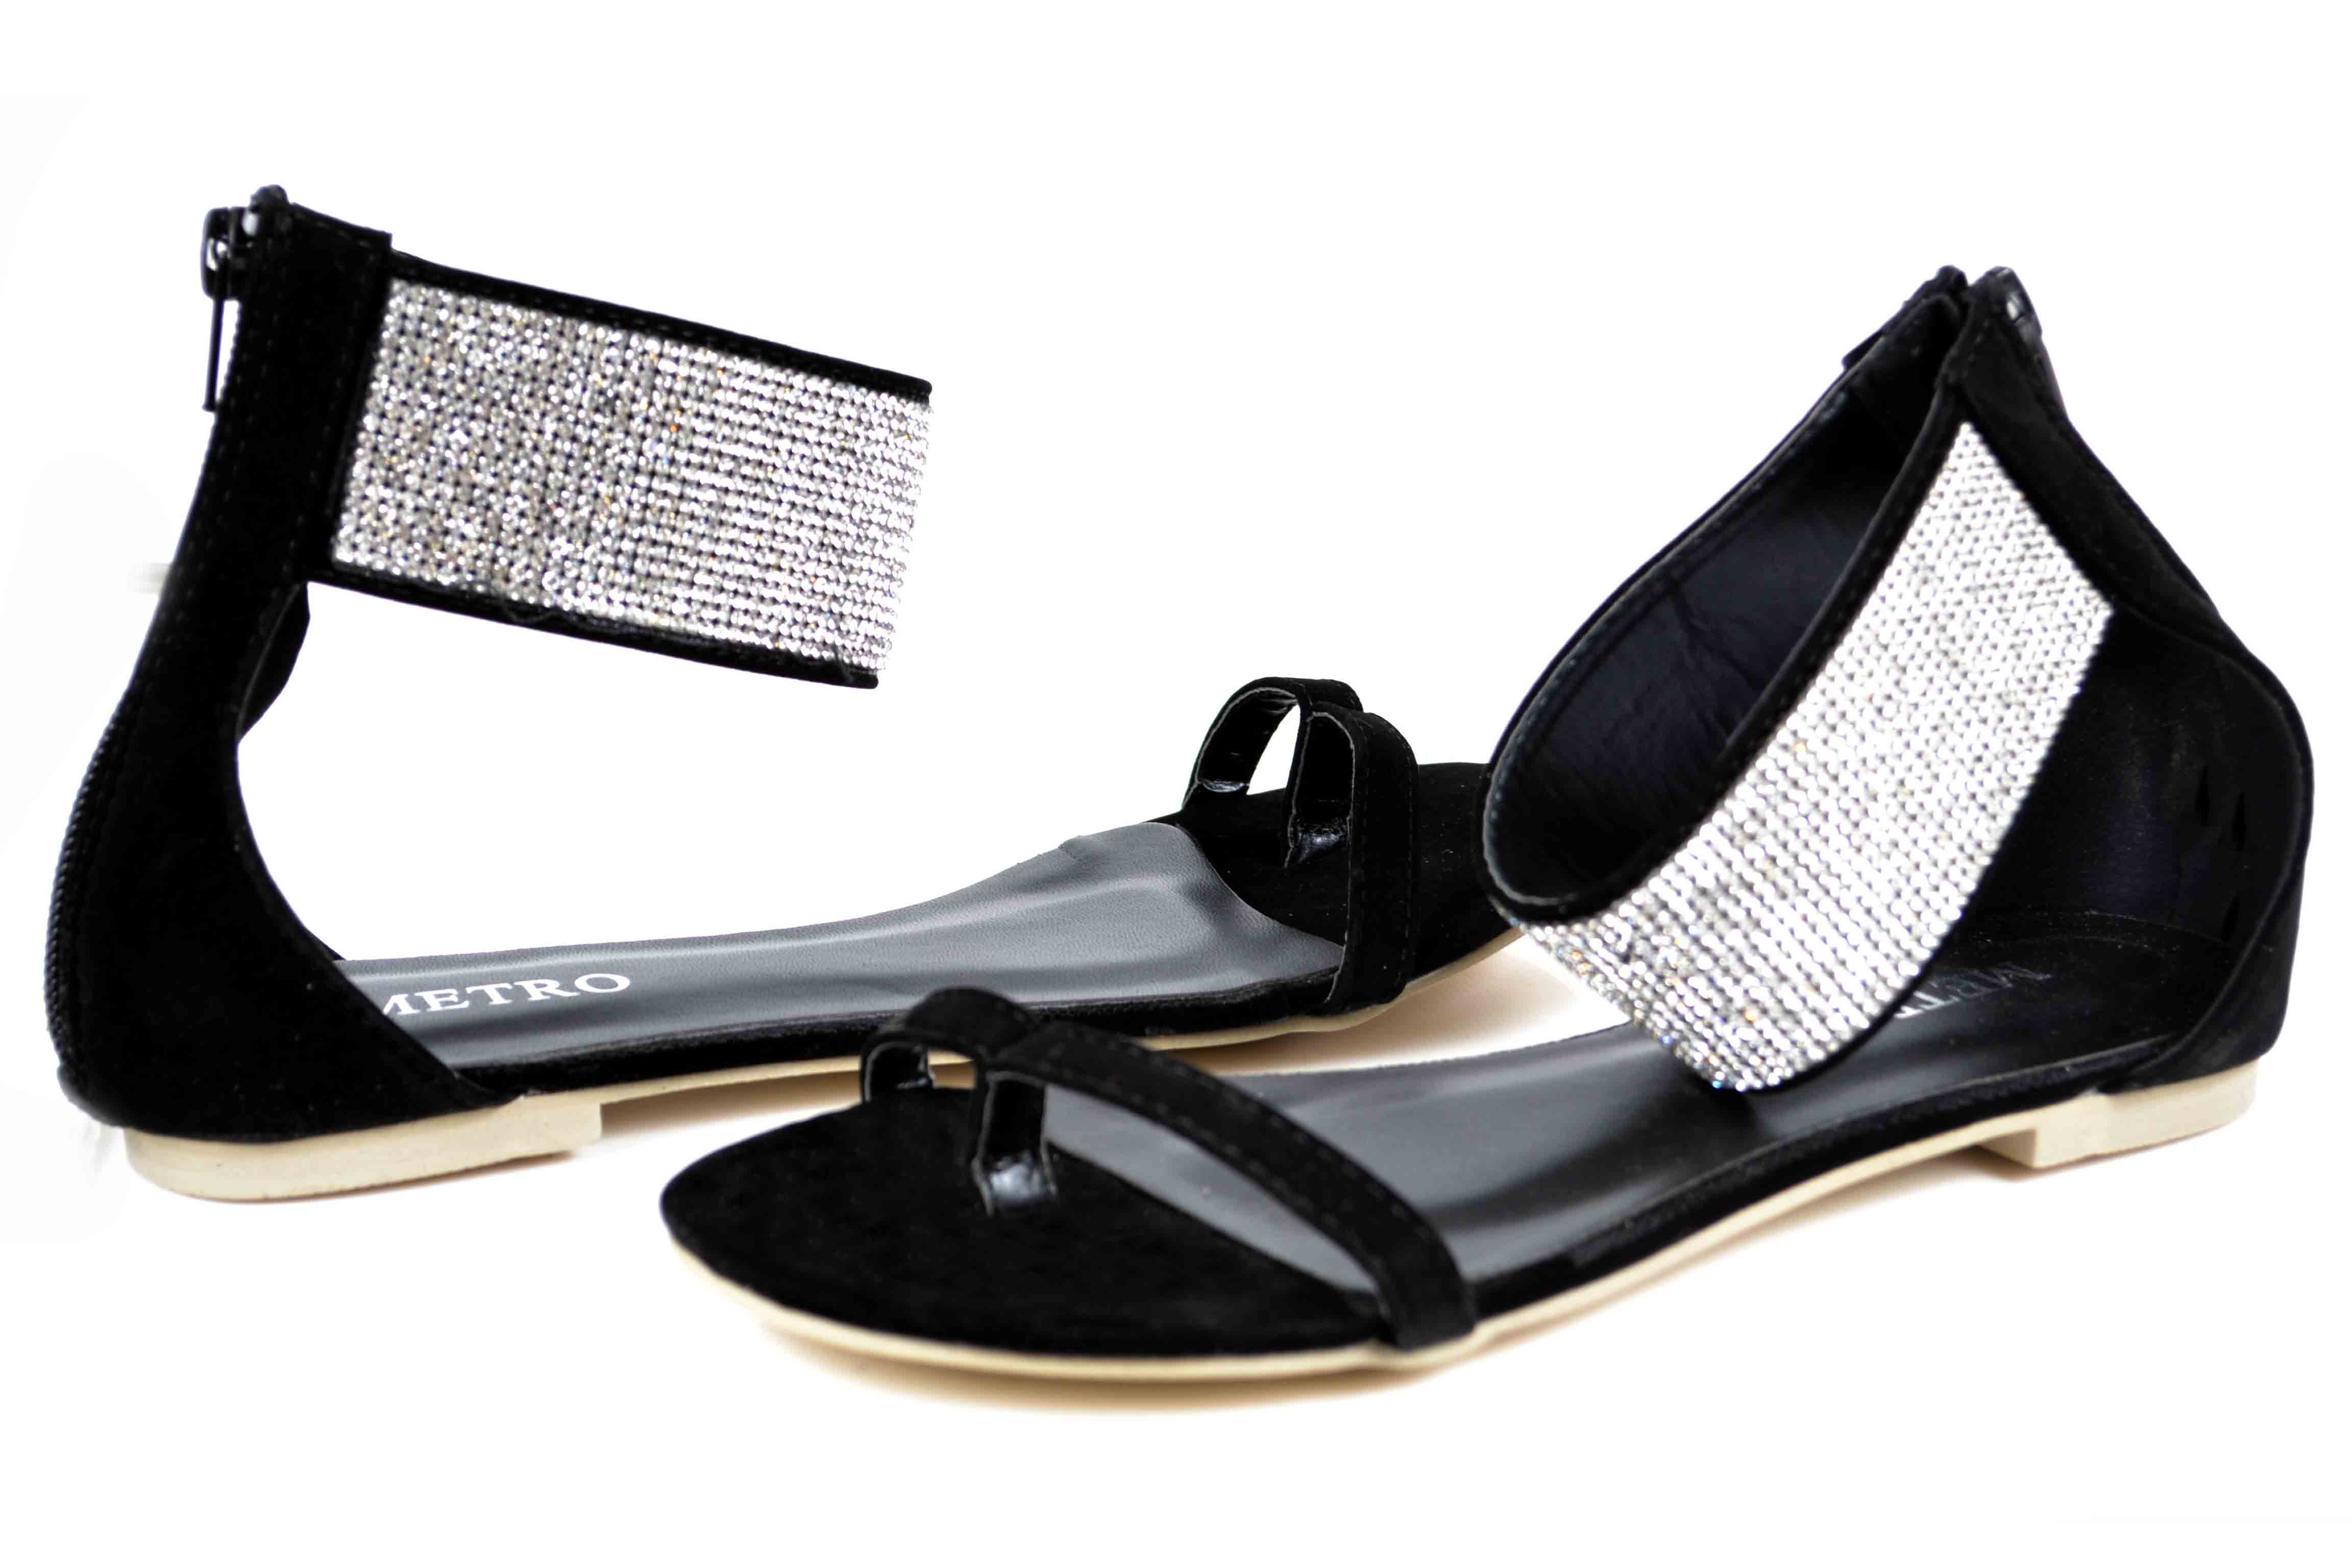 Metro-Shoes-Spring-Summer-Collection-2015-2016 (33)